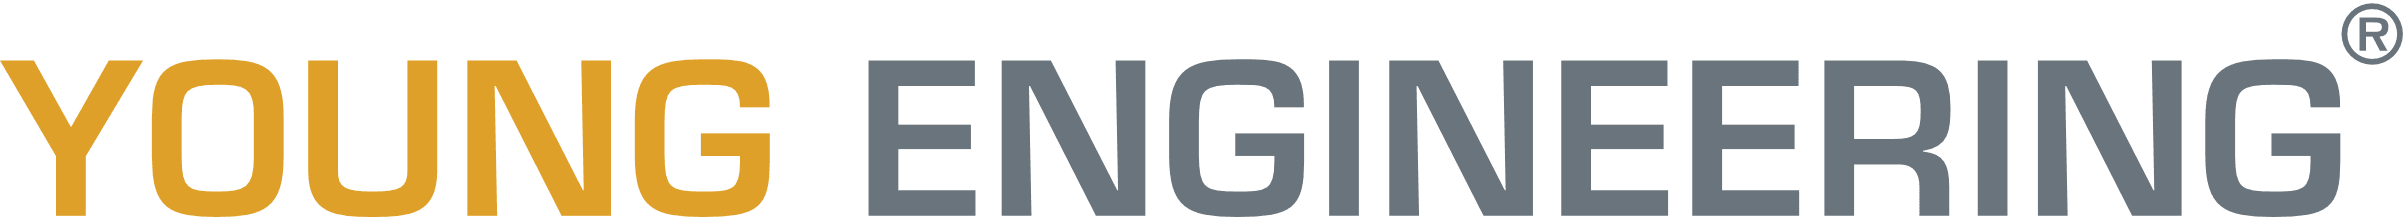 Young Engineering: PLC Engineer